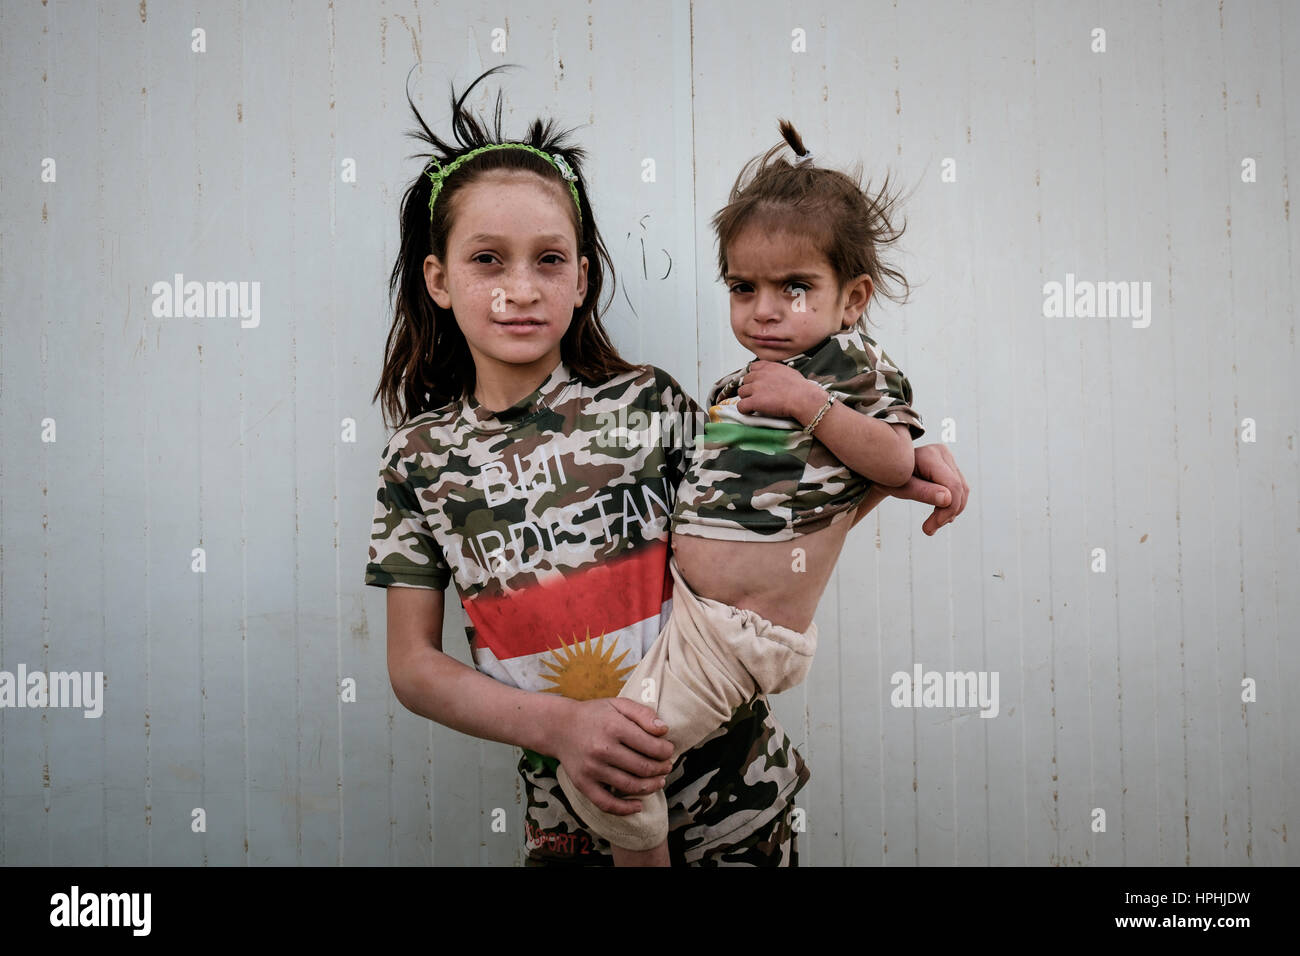 Refugee girl carrying her sickly baby sister wearing T shirts with the slogan BIJI KURDISTAN (Long Live Kurdistan) - Stock Image